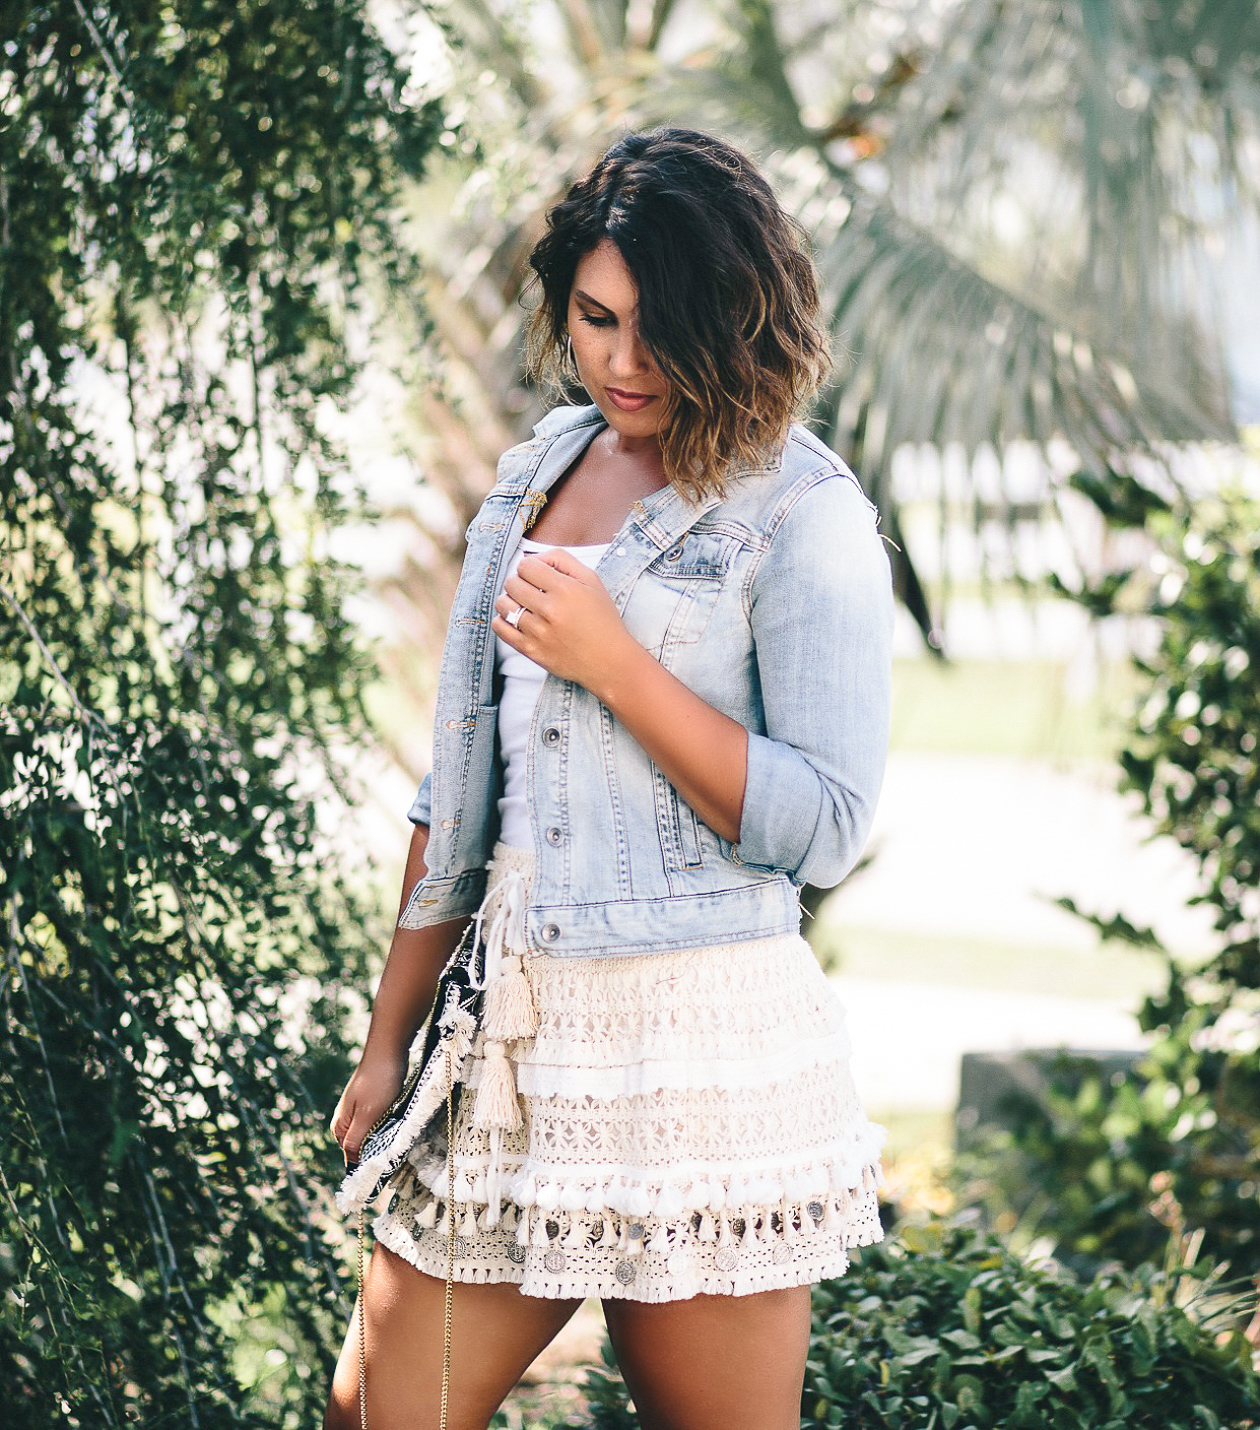 surf gypsy skirt, boho chic, francesca's handbag